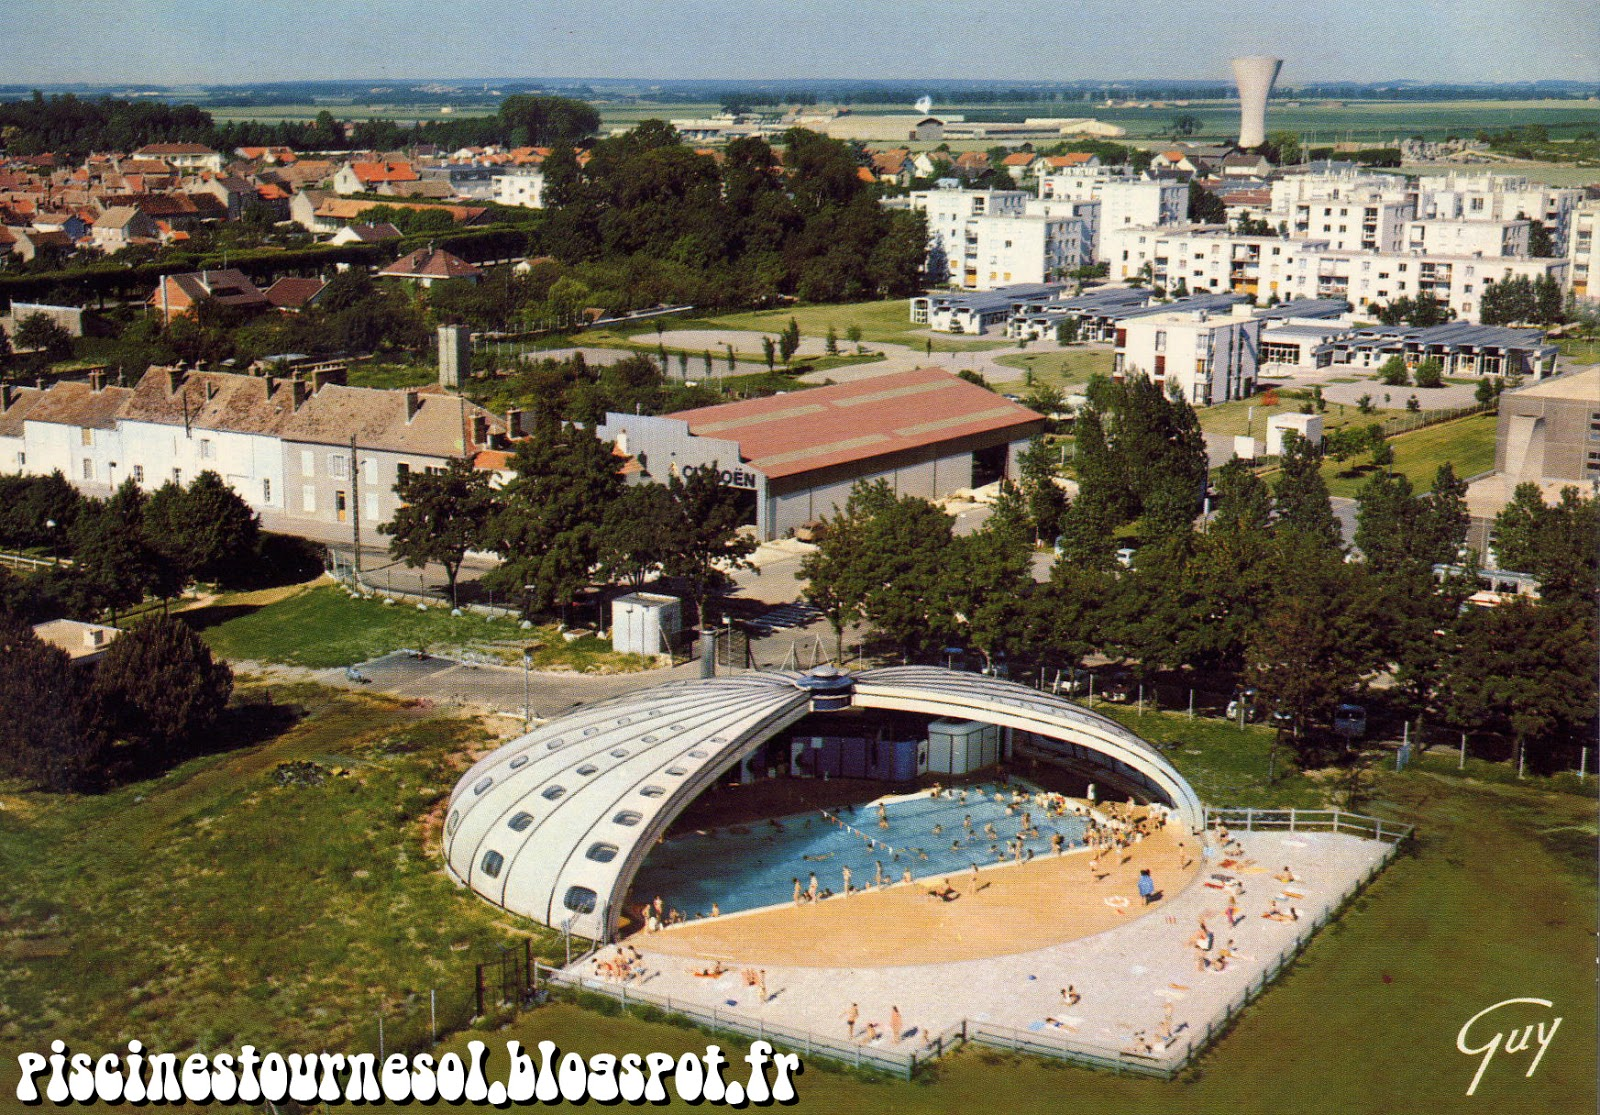 Piscines tournesol avril 2013 for Chatelaillon piscine